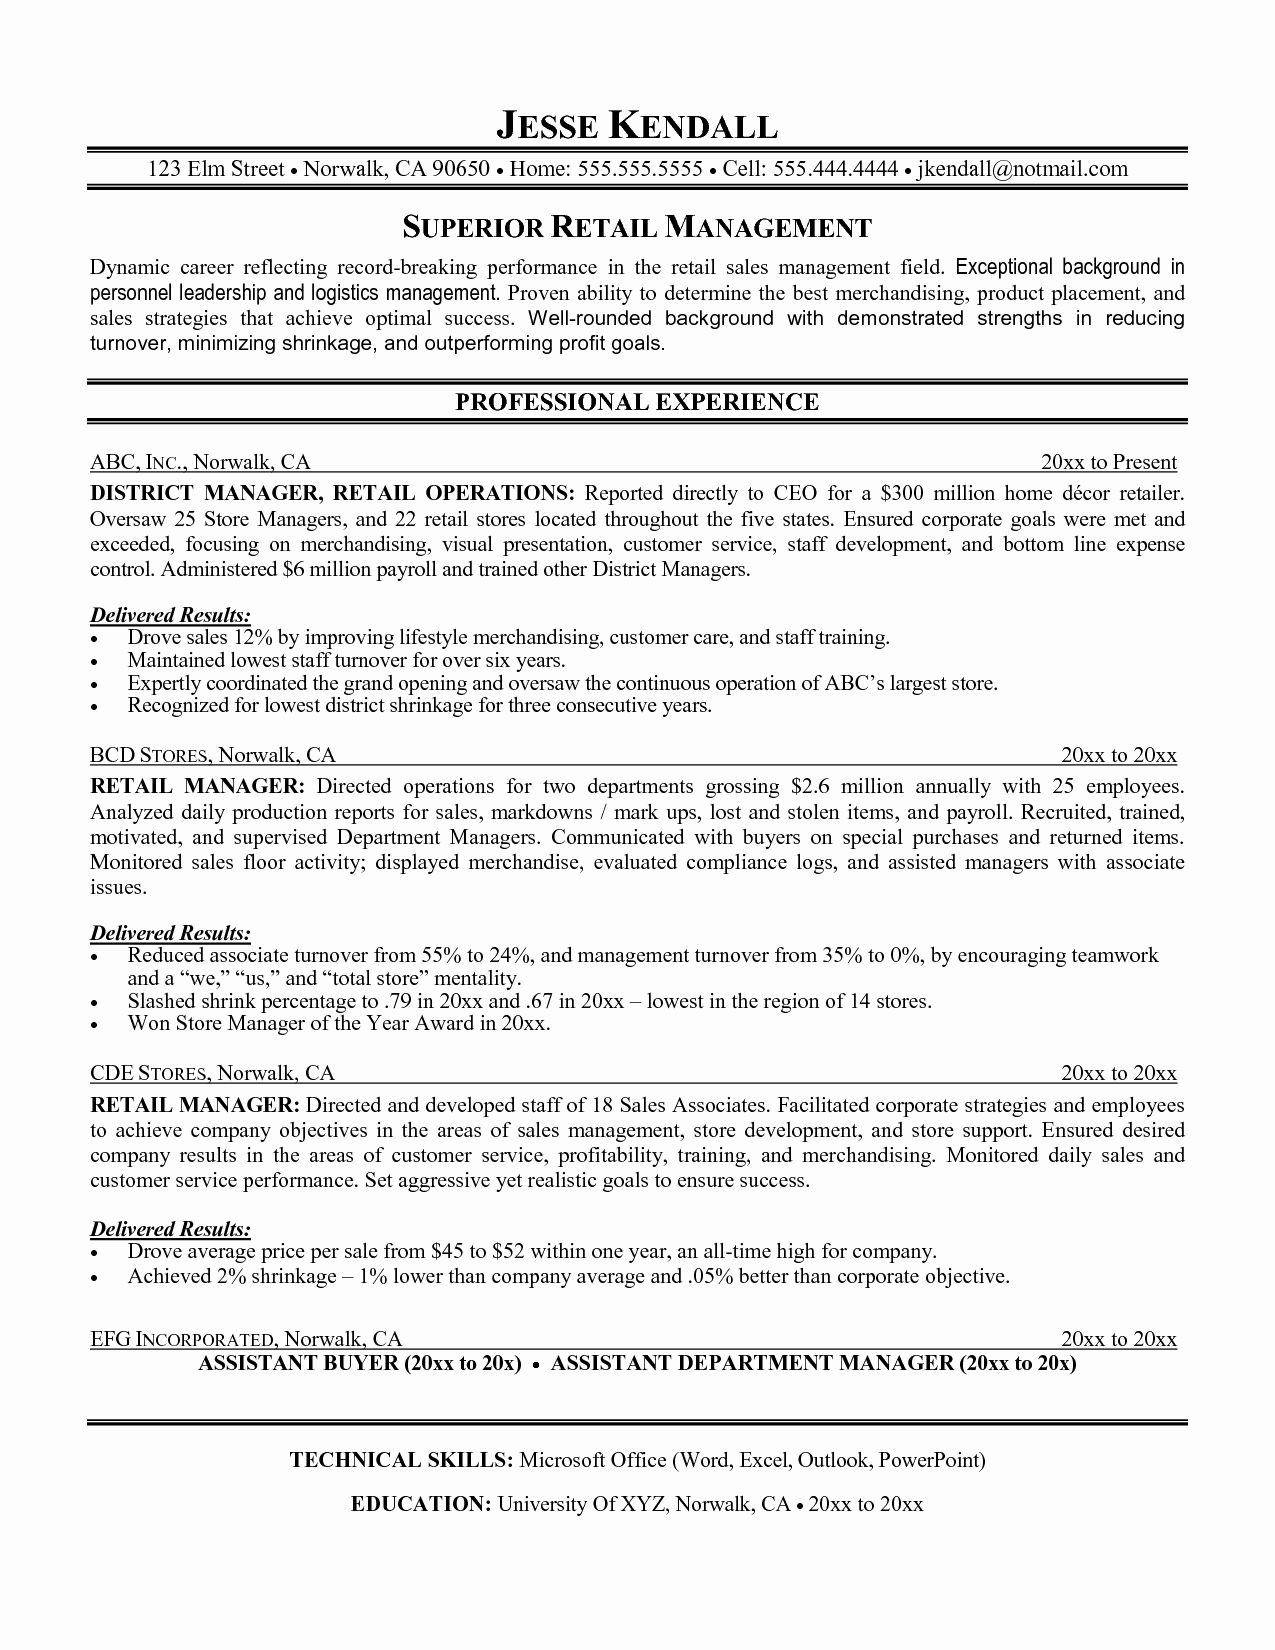 23 Retail Management Resume Examples in 2020 Retail